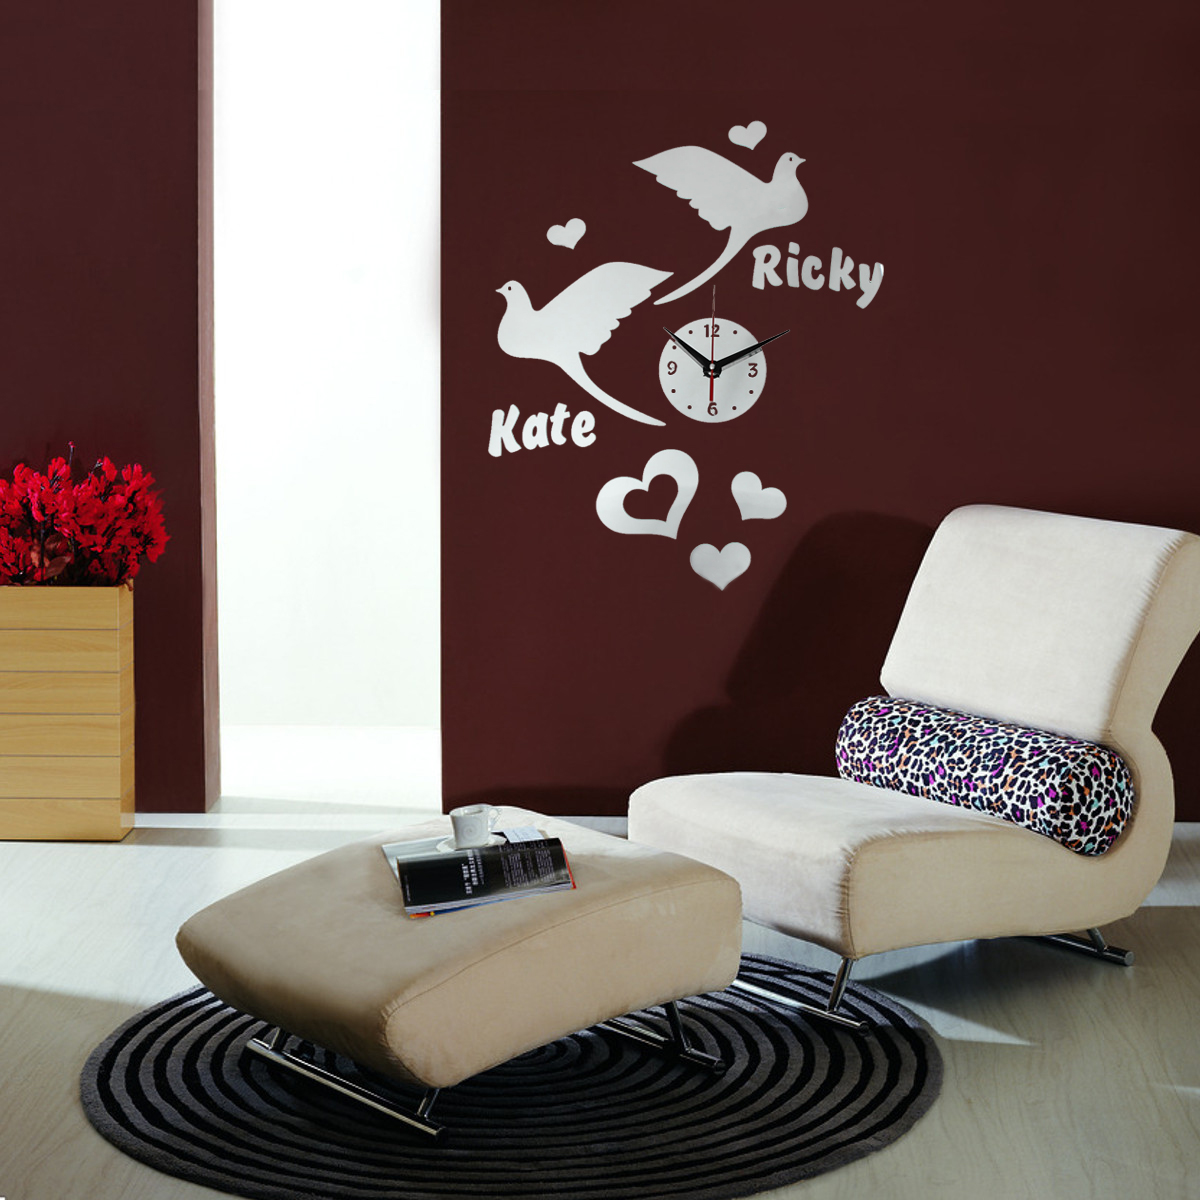 Diy Large Wall Mirror Modern Acrylic Mirror Surface Diy Large Wall Clock Sticker Home